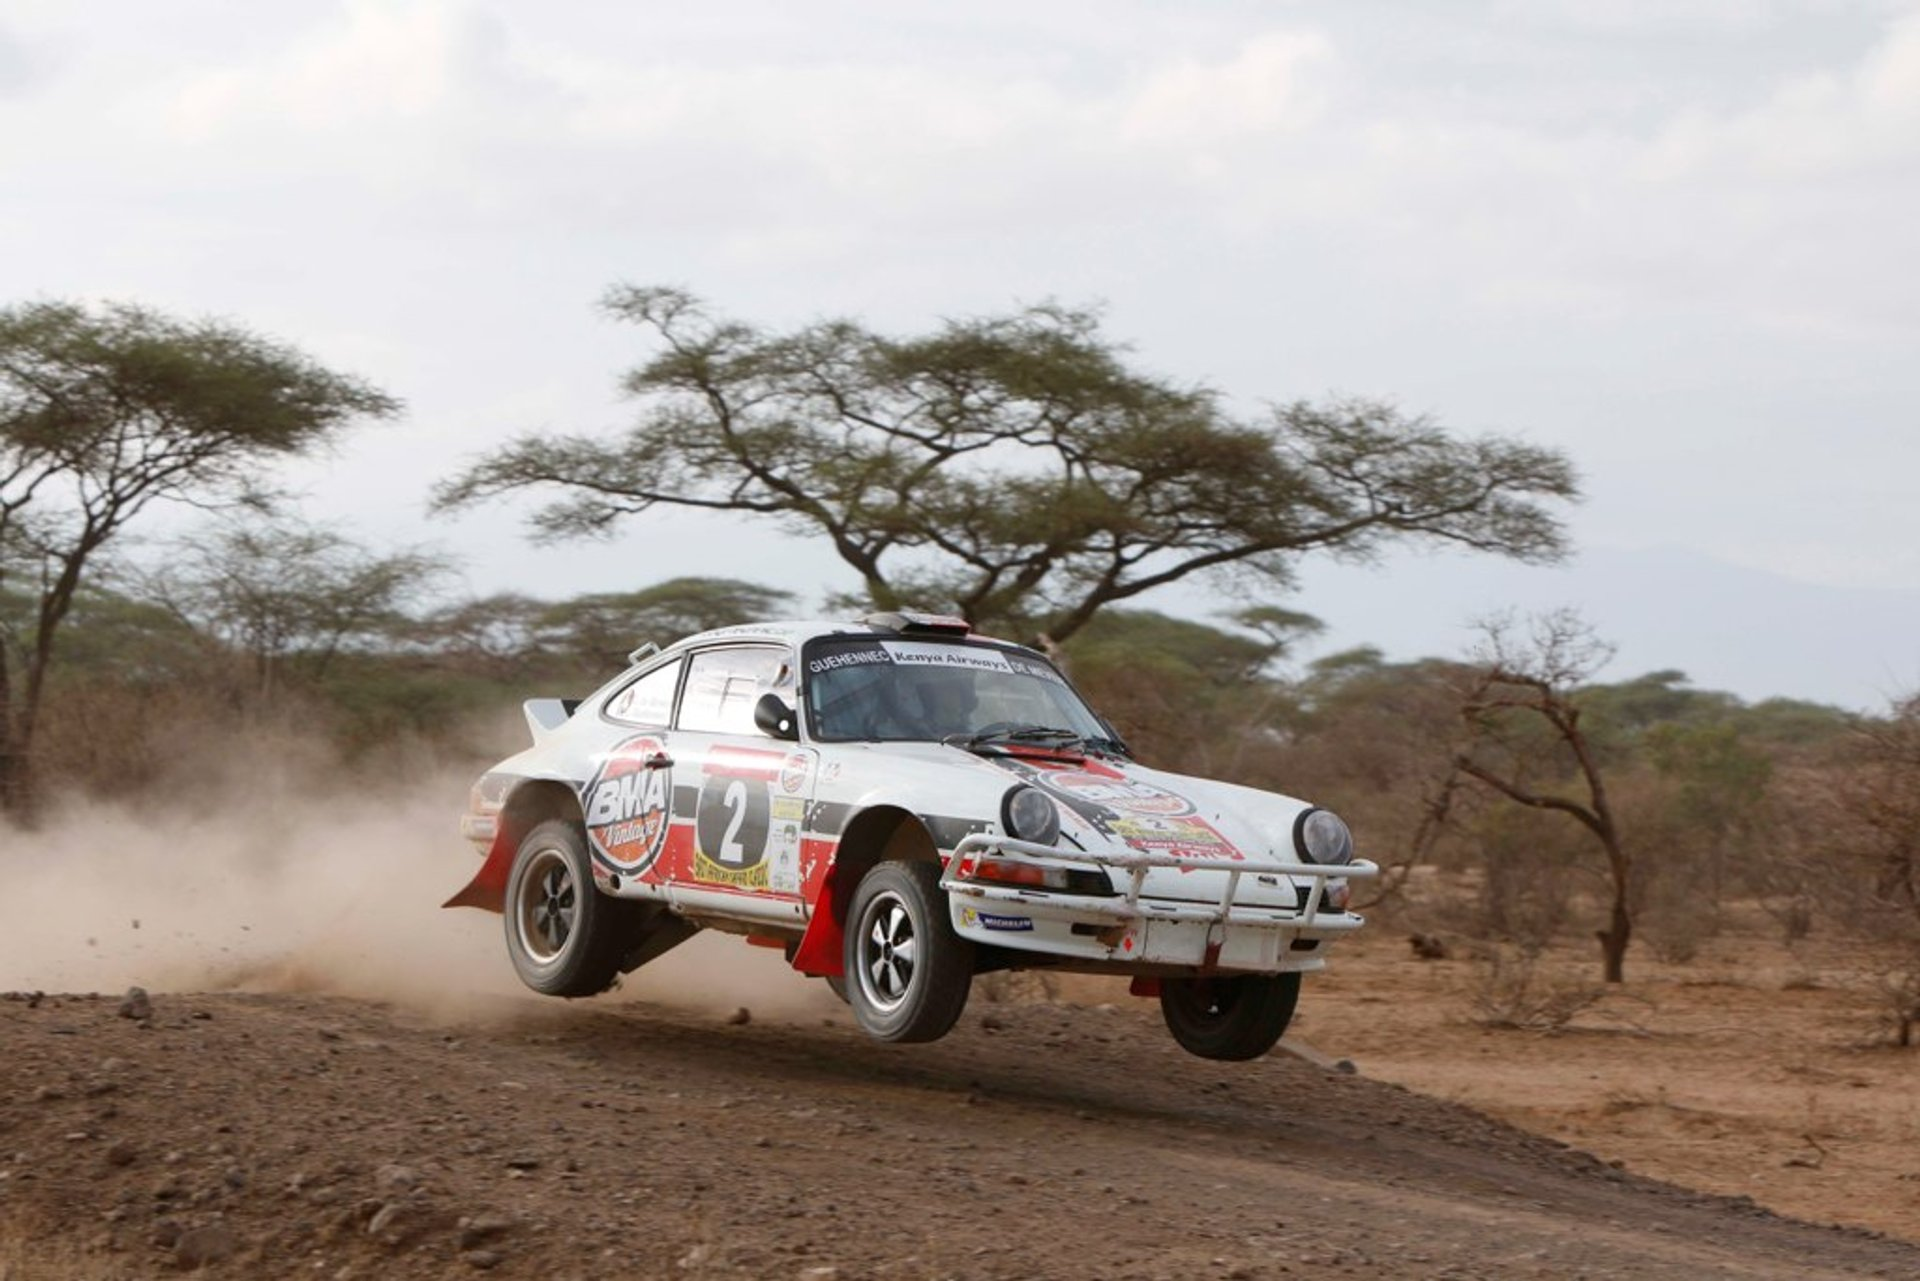 East African Safari Classic Rally in Kenya - Best Season 2020